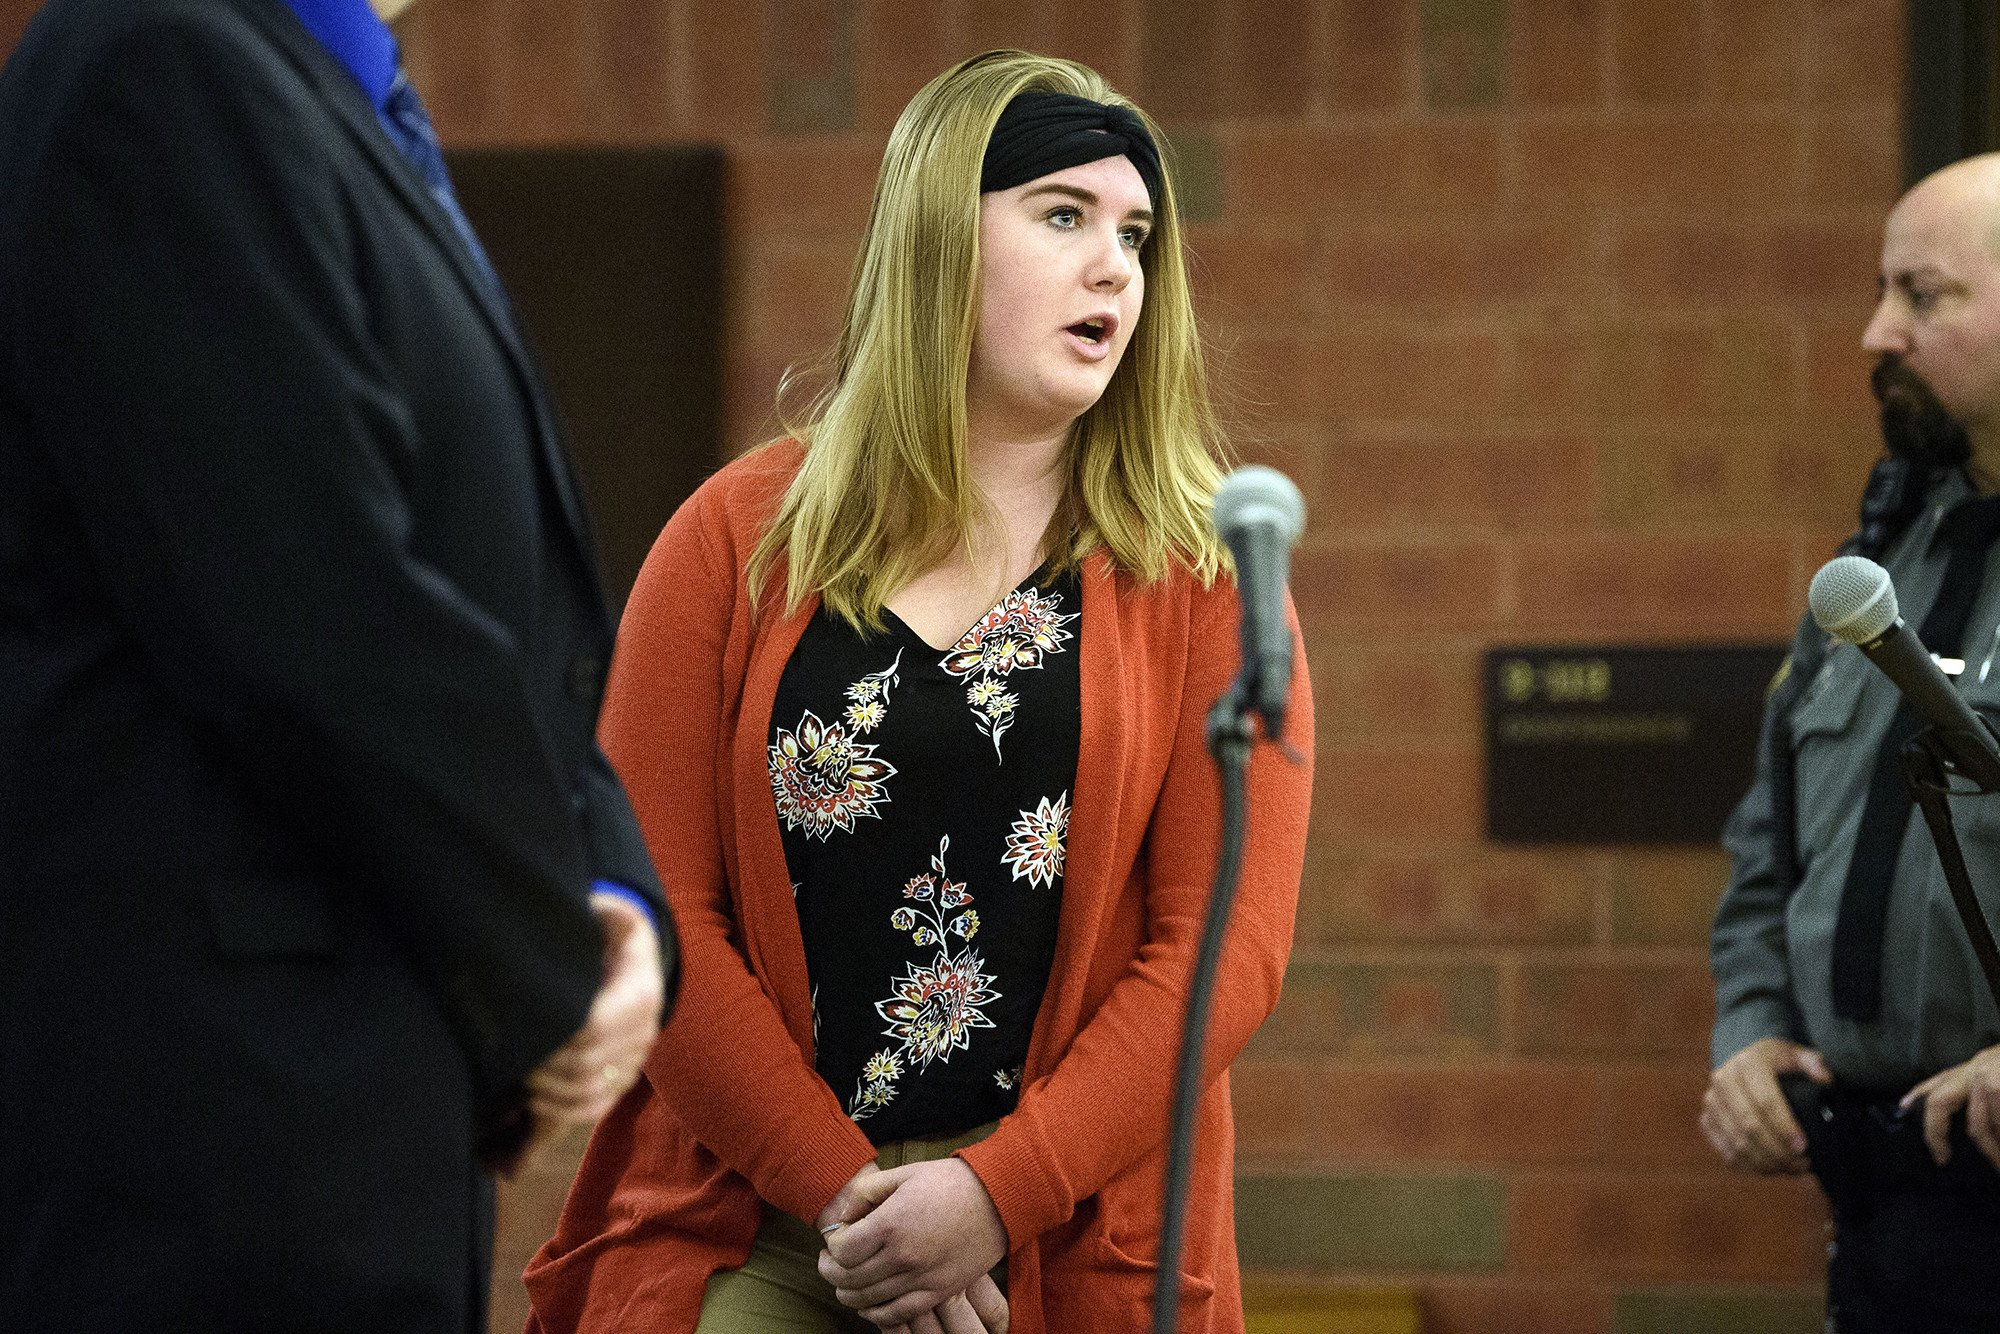 Roommate from hell gets probation in bloody tampon case